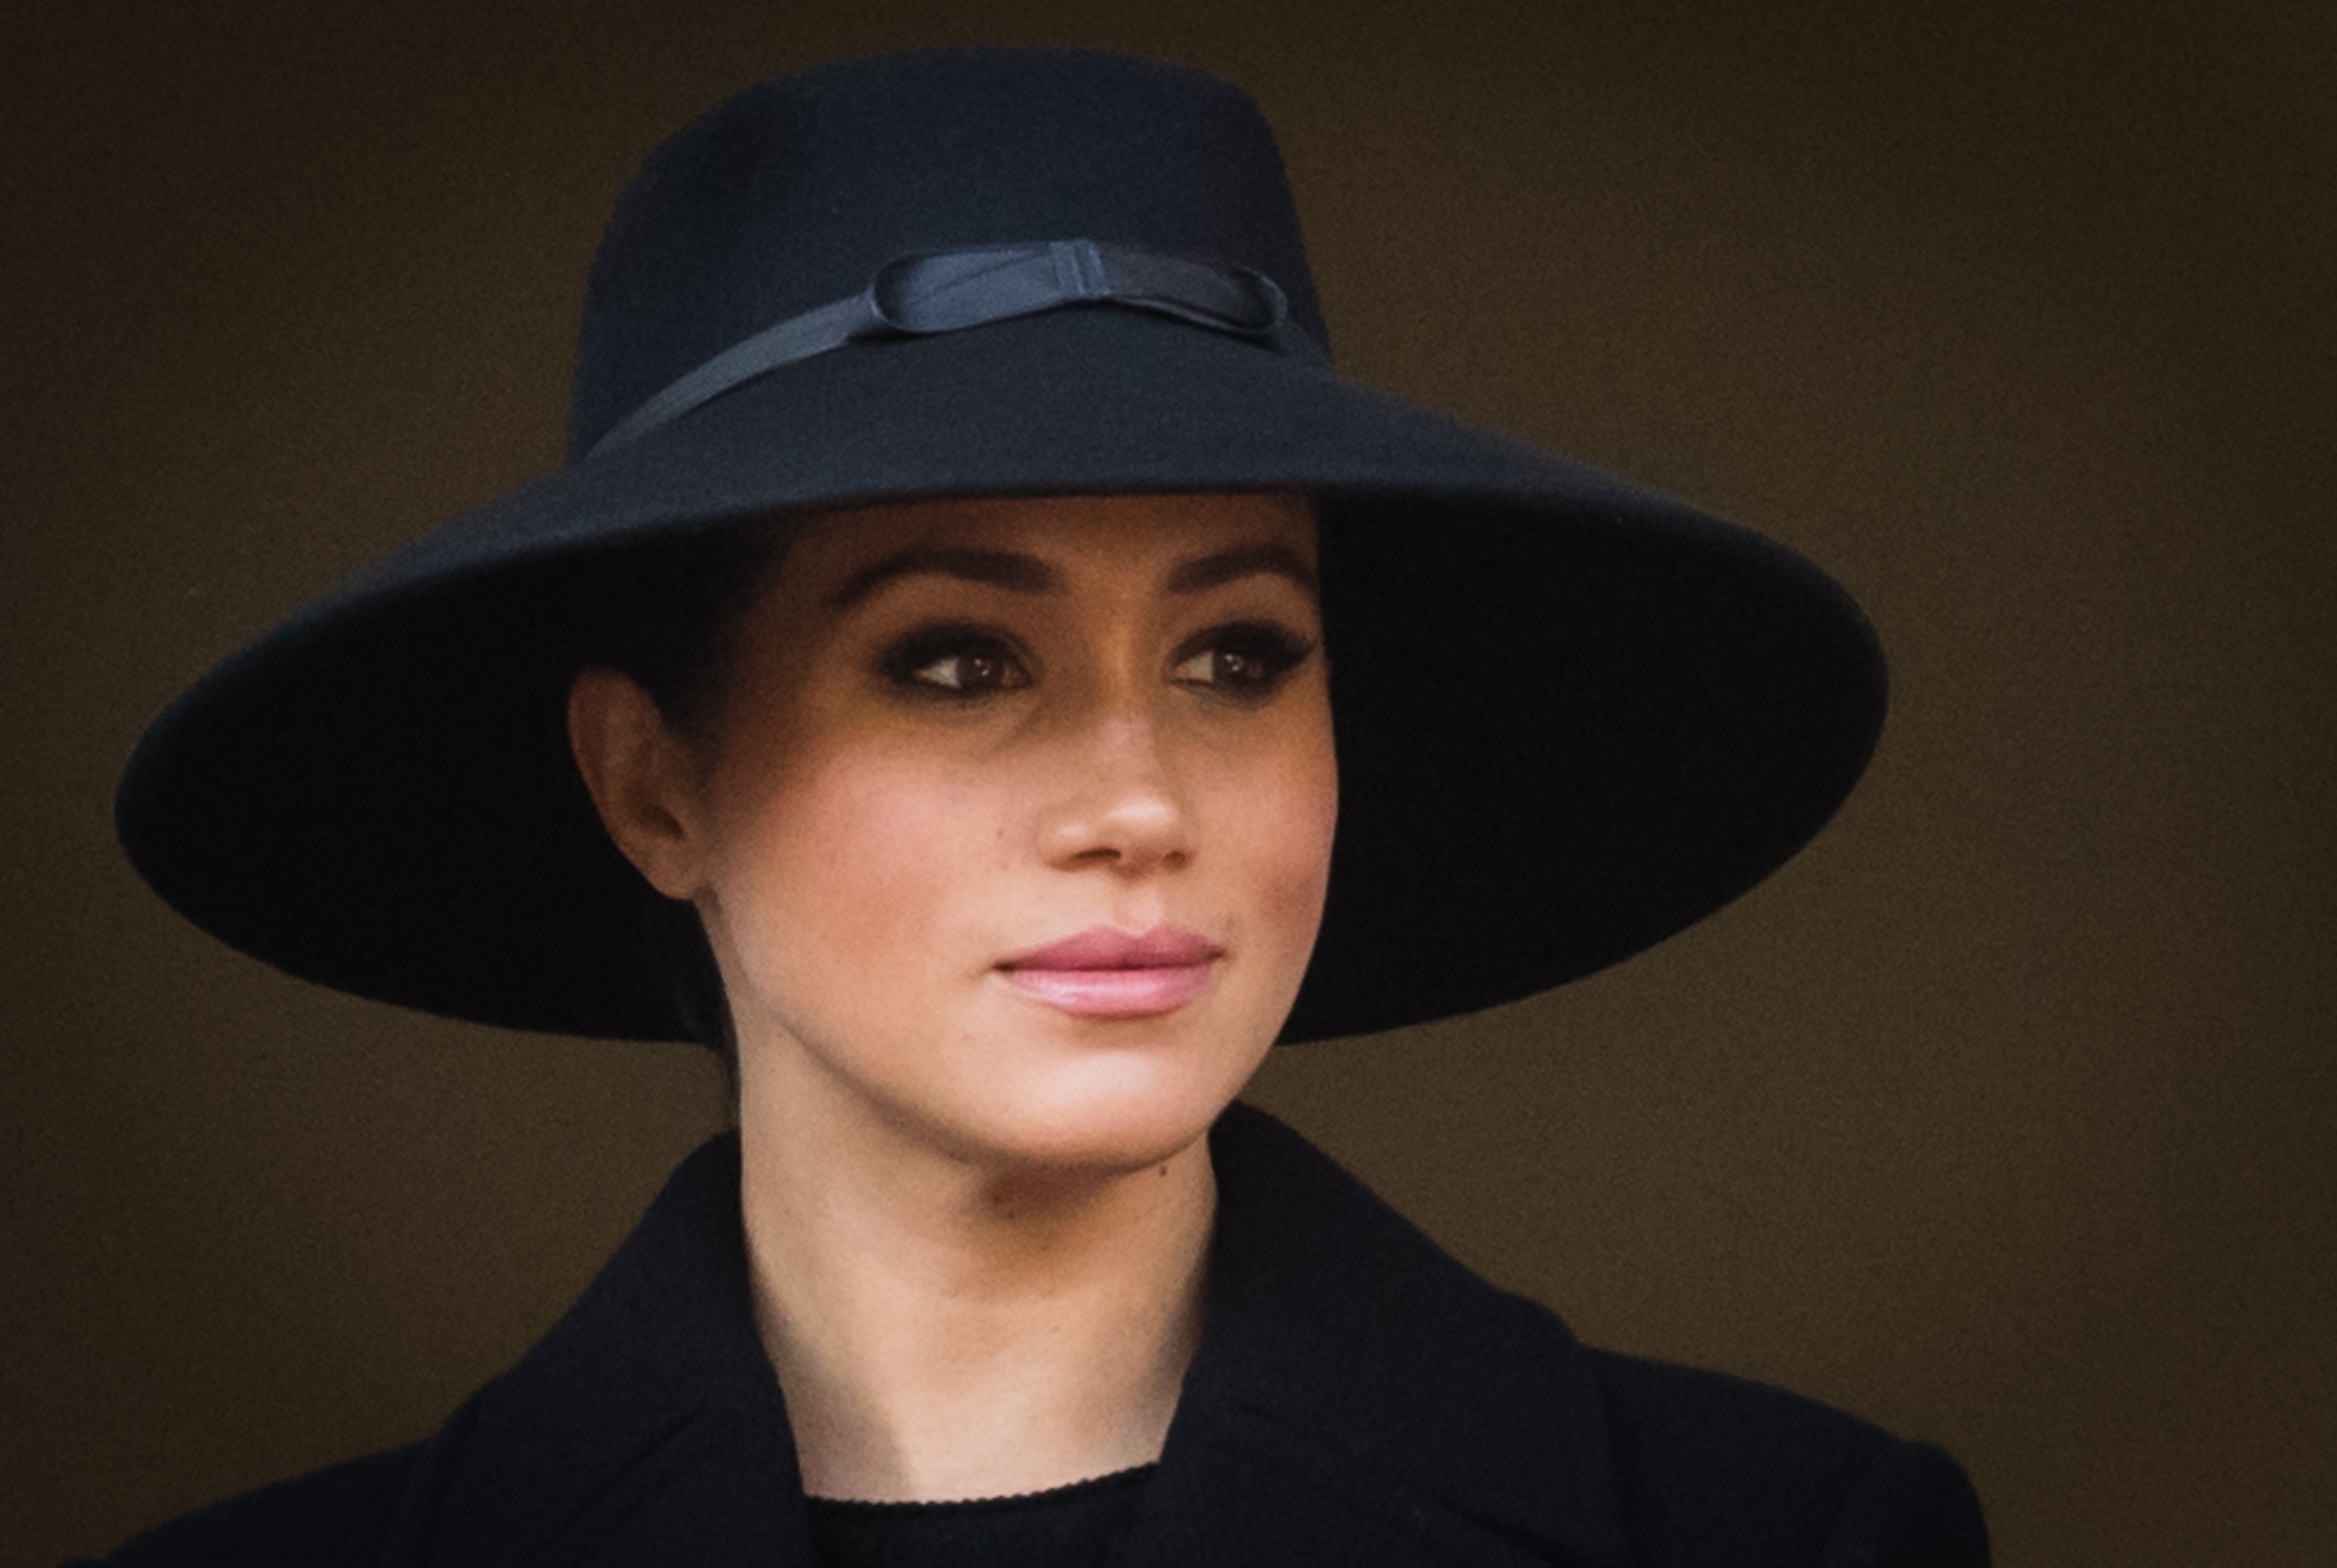 Here's why everyone's talking about Meghan Markle's secret meeting